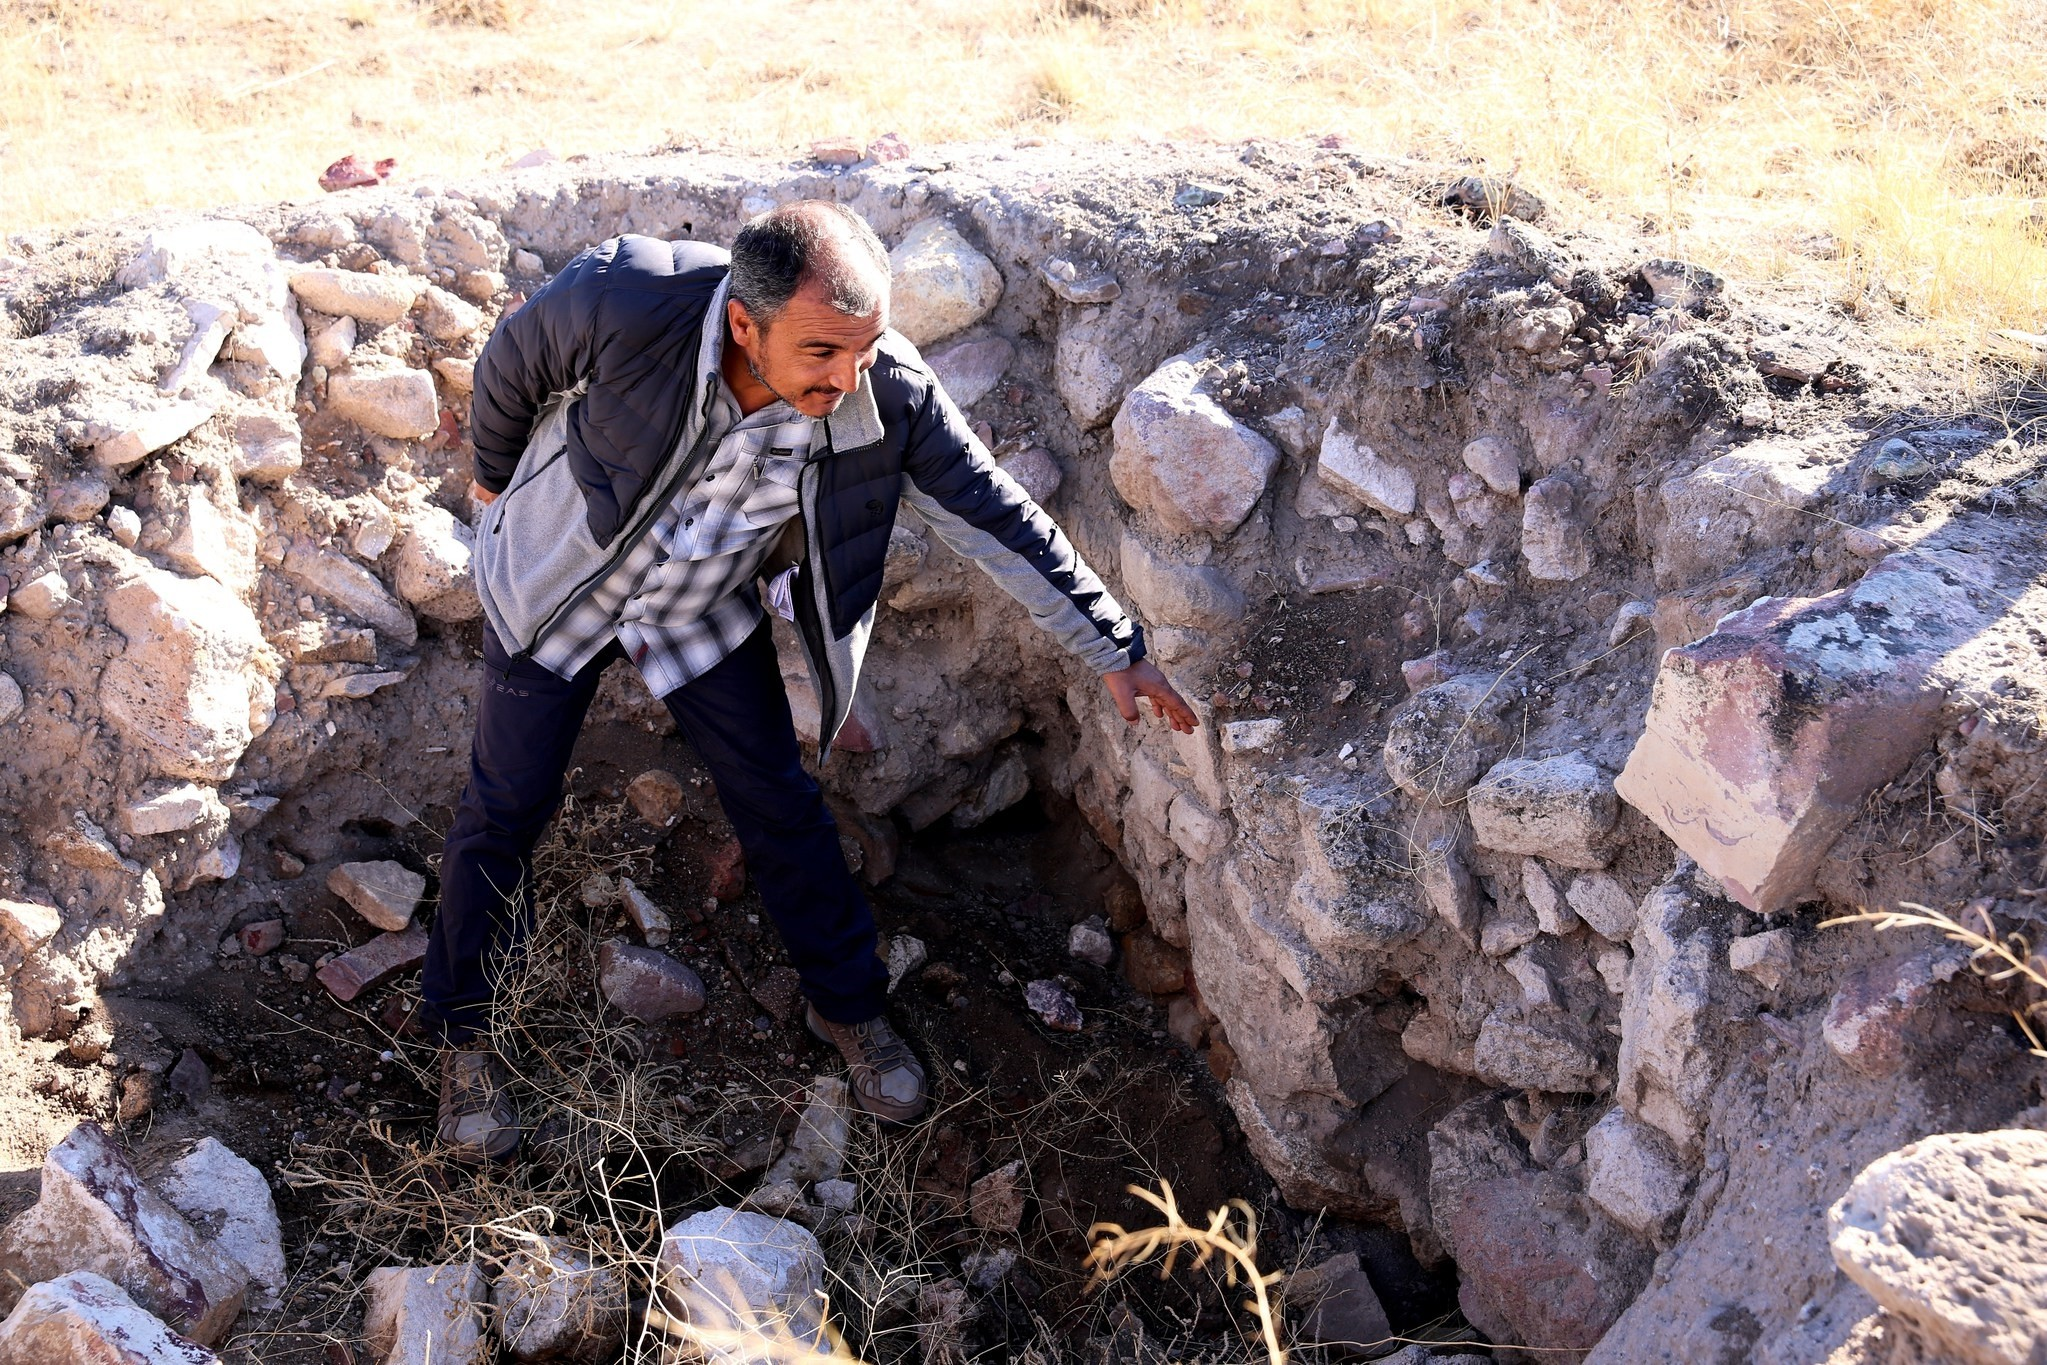 In Turkey's Cappadocia region, Nevu015fehir province, an approximately 5,000-year-old fortress dating to the Early Bronze Age was found by archaeologists. (AA Photo)